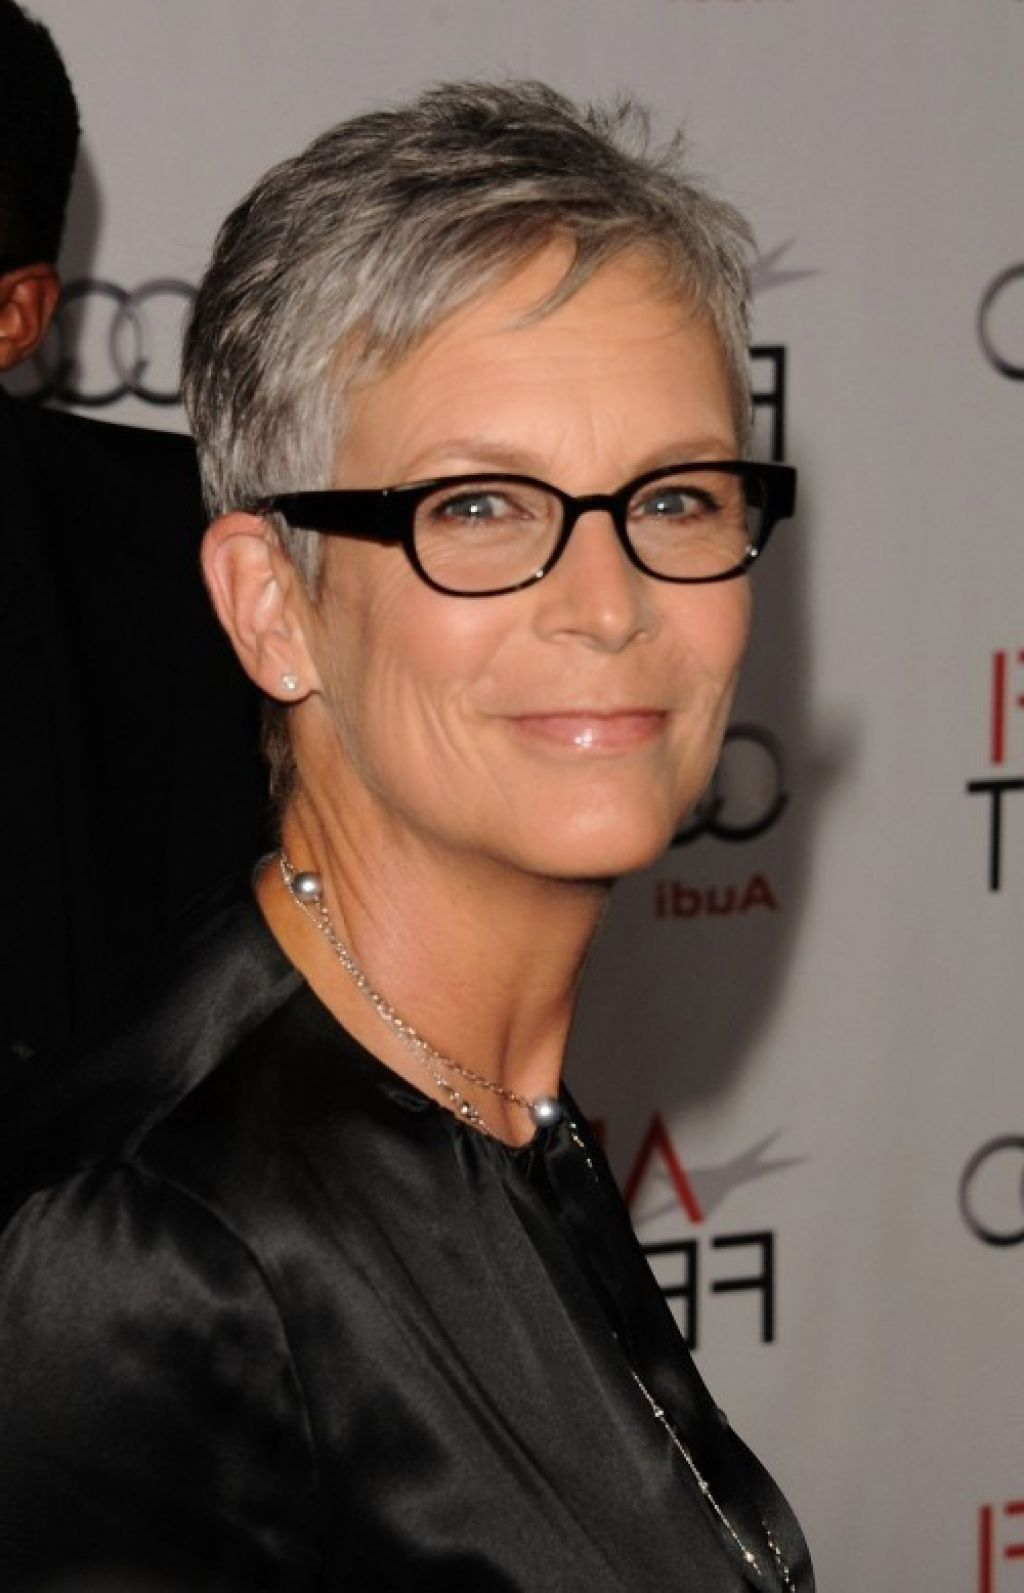 short hairstyles women over 60 with glasses | debs | pinterest